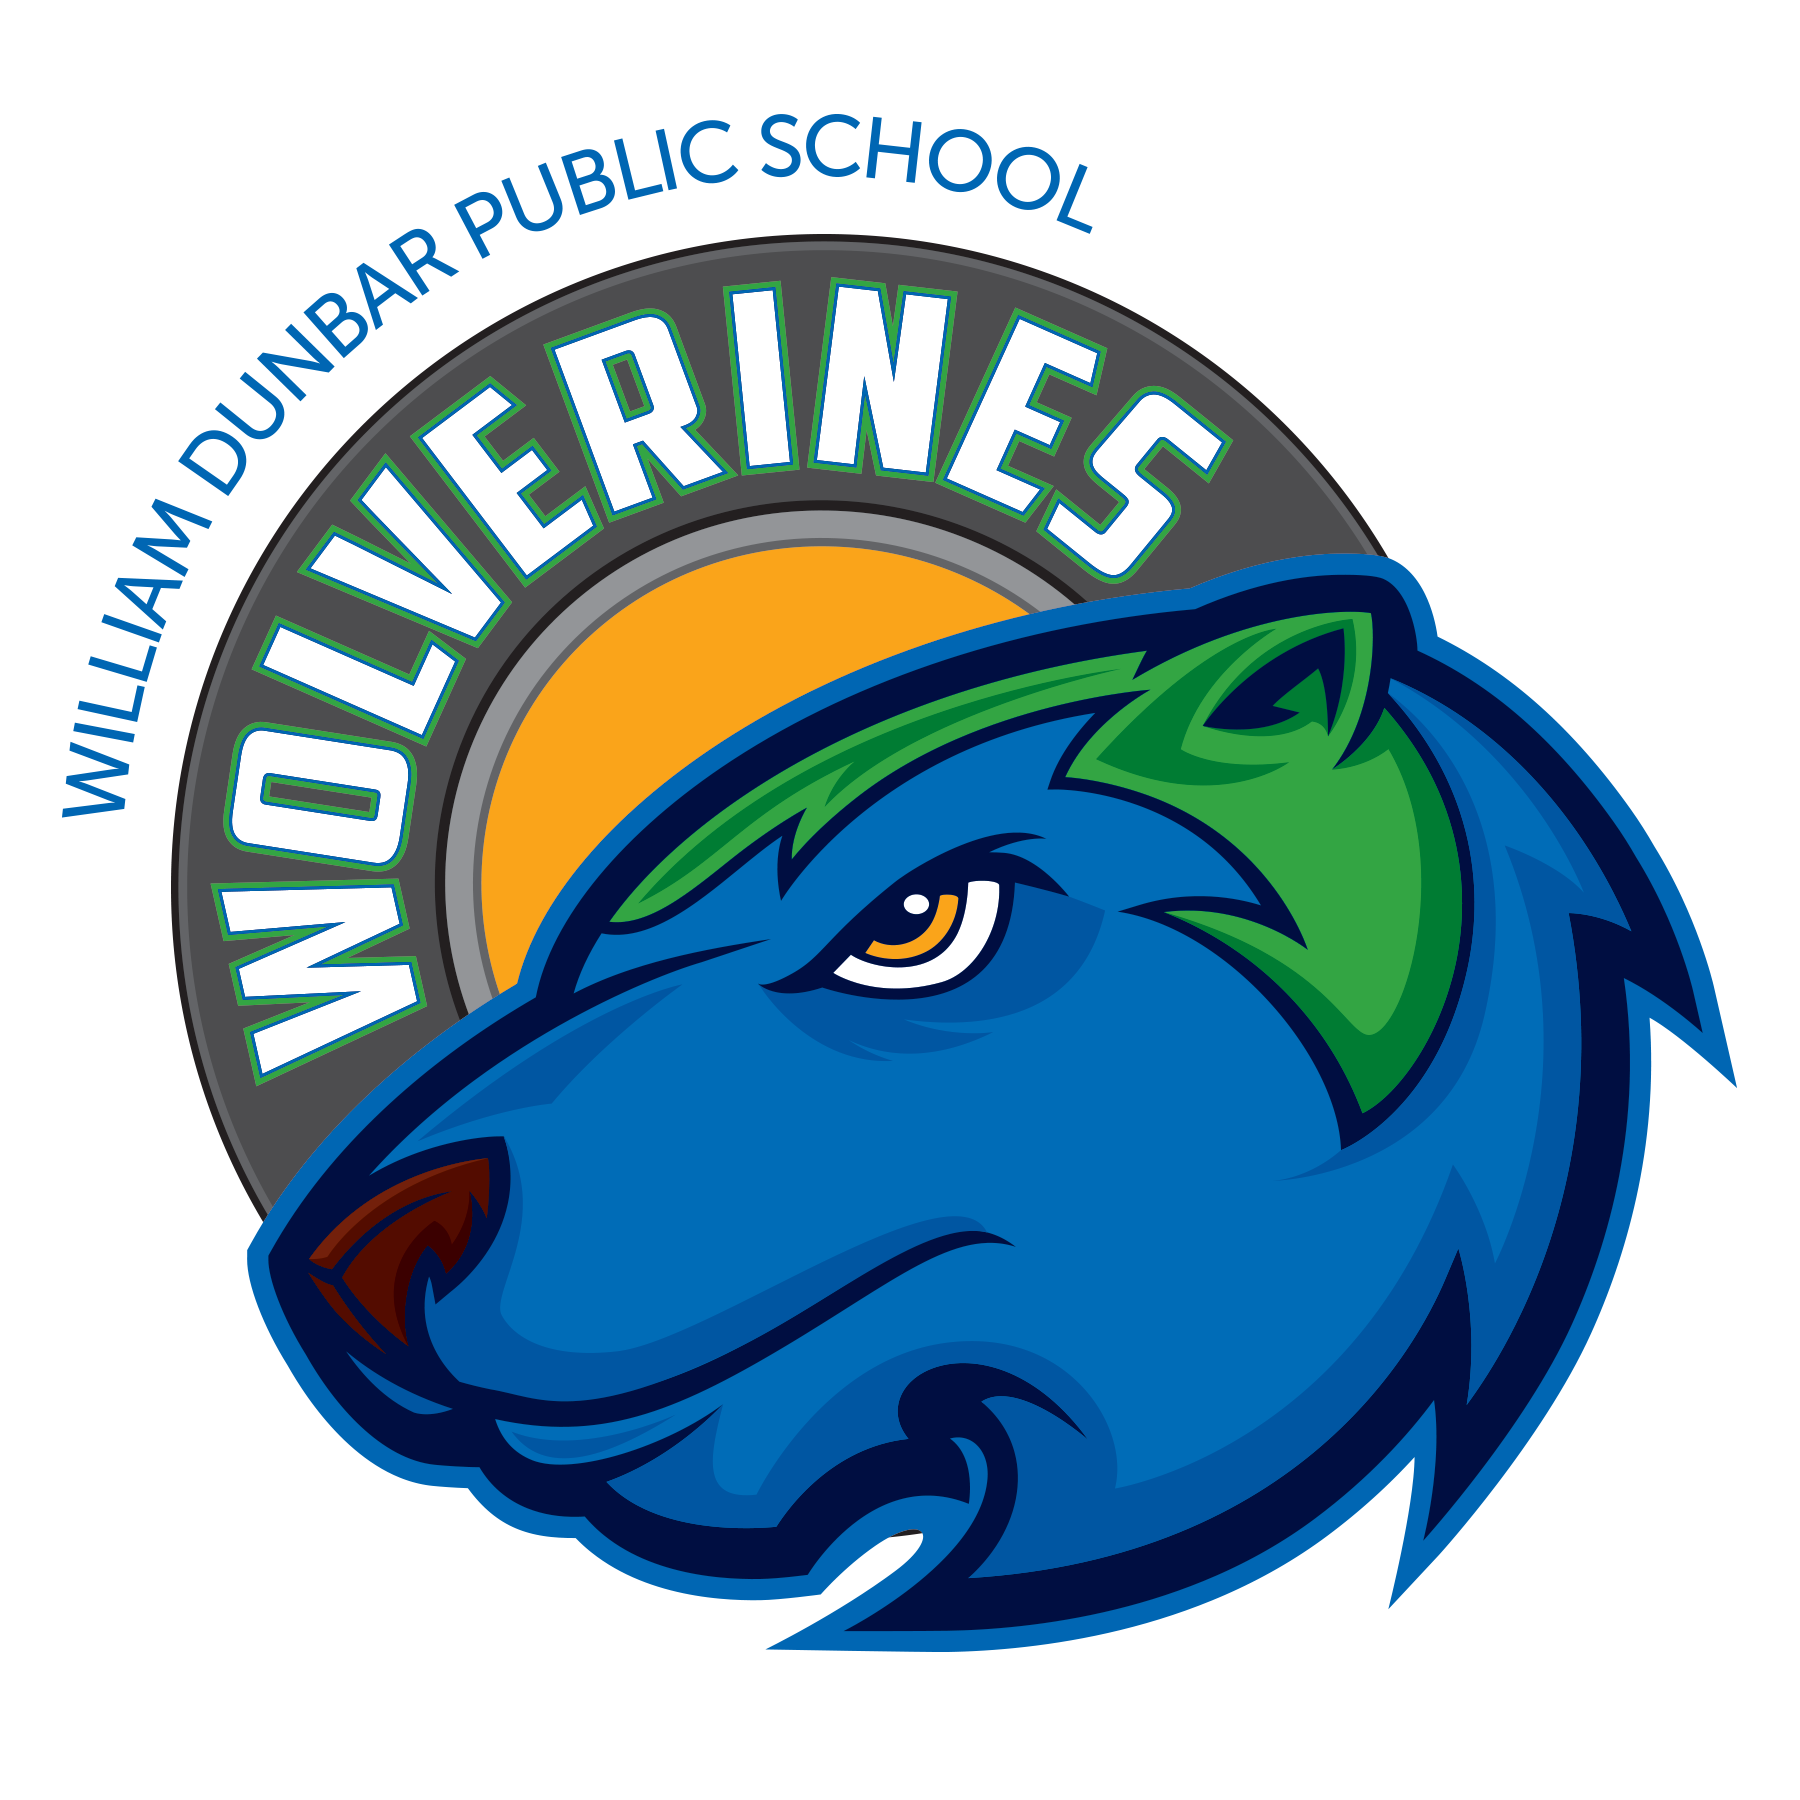 William Dunbar Public School logo